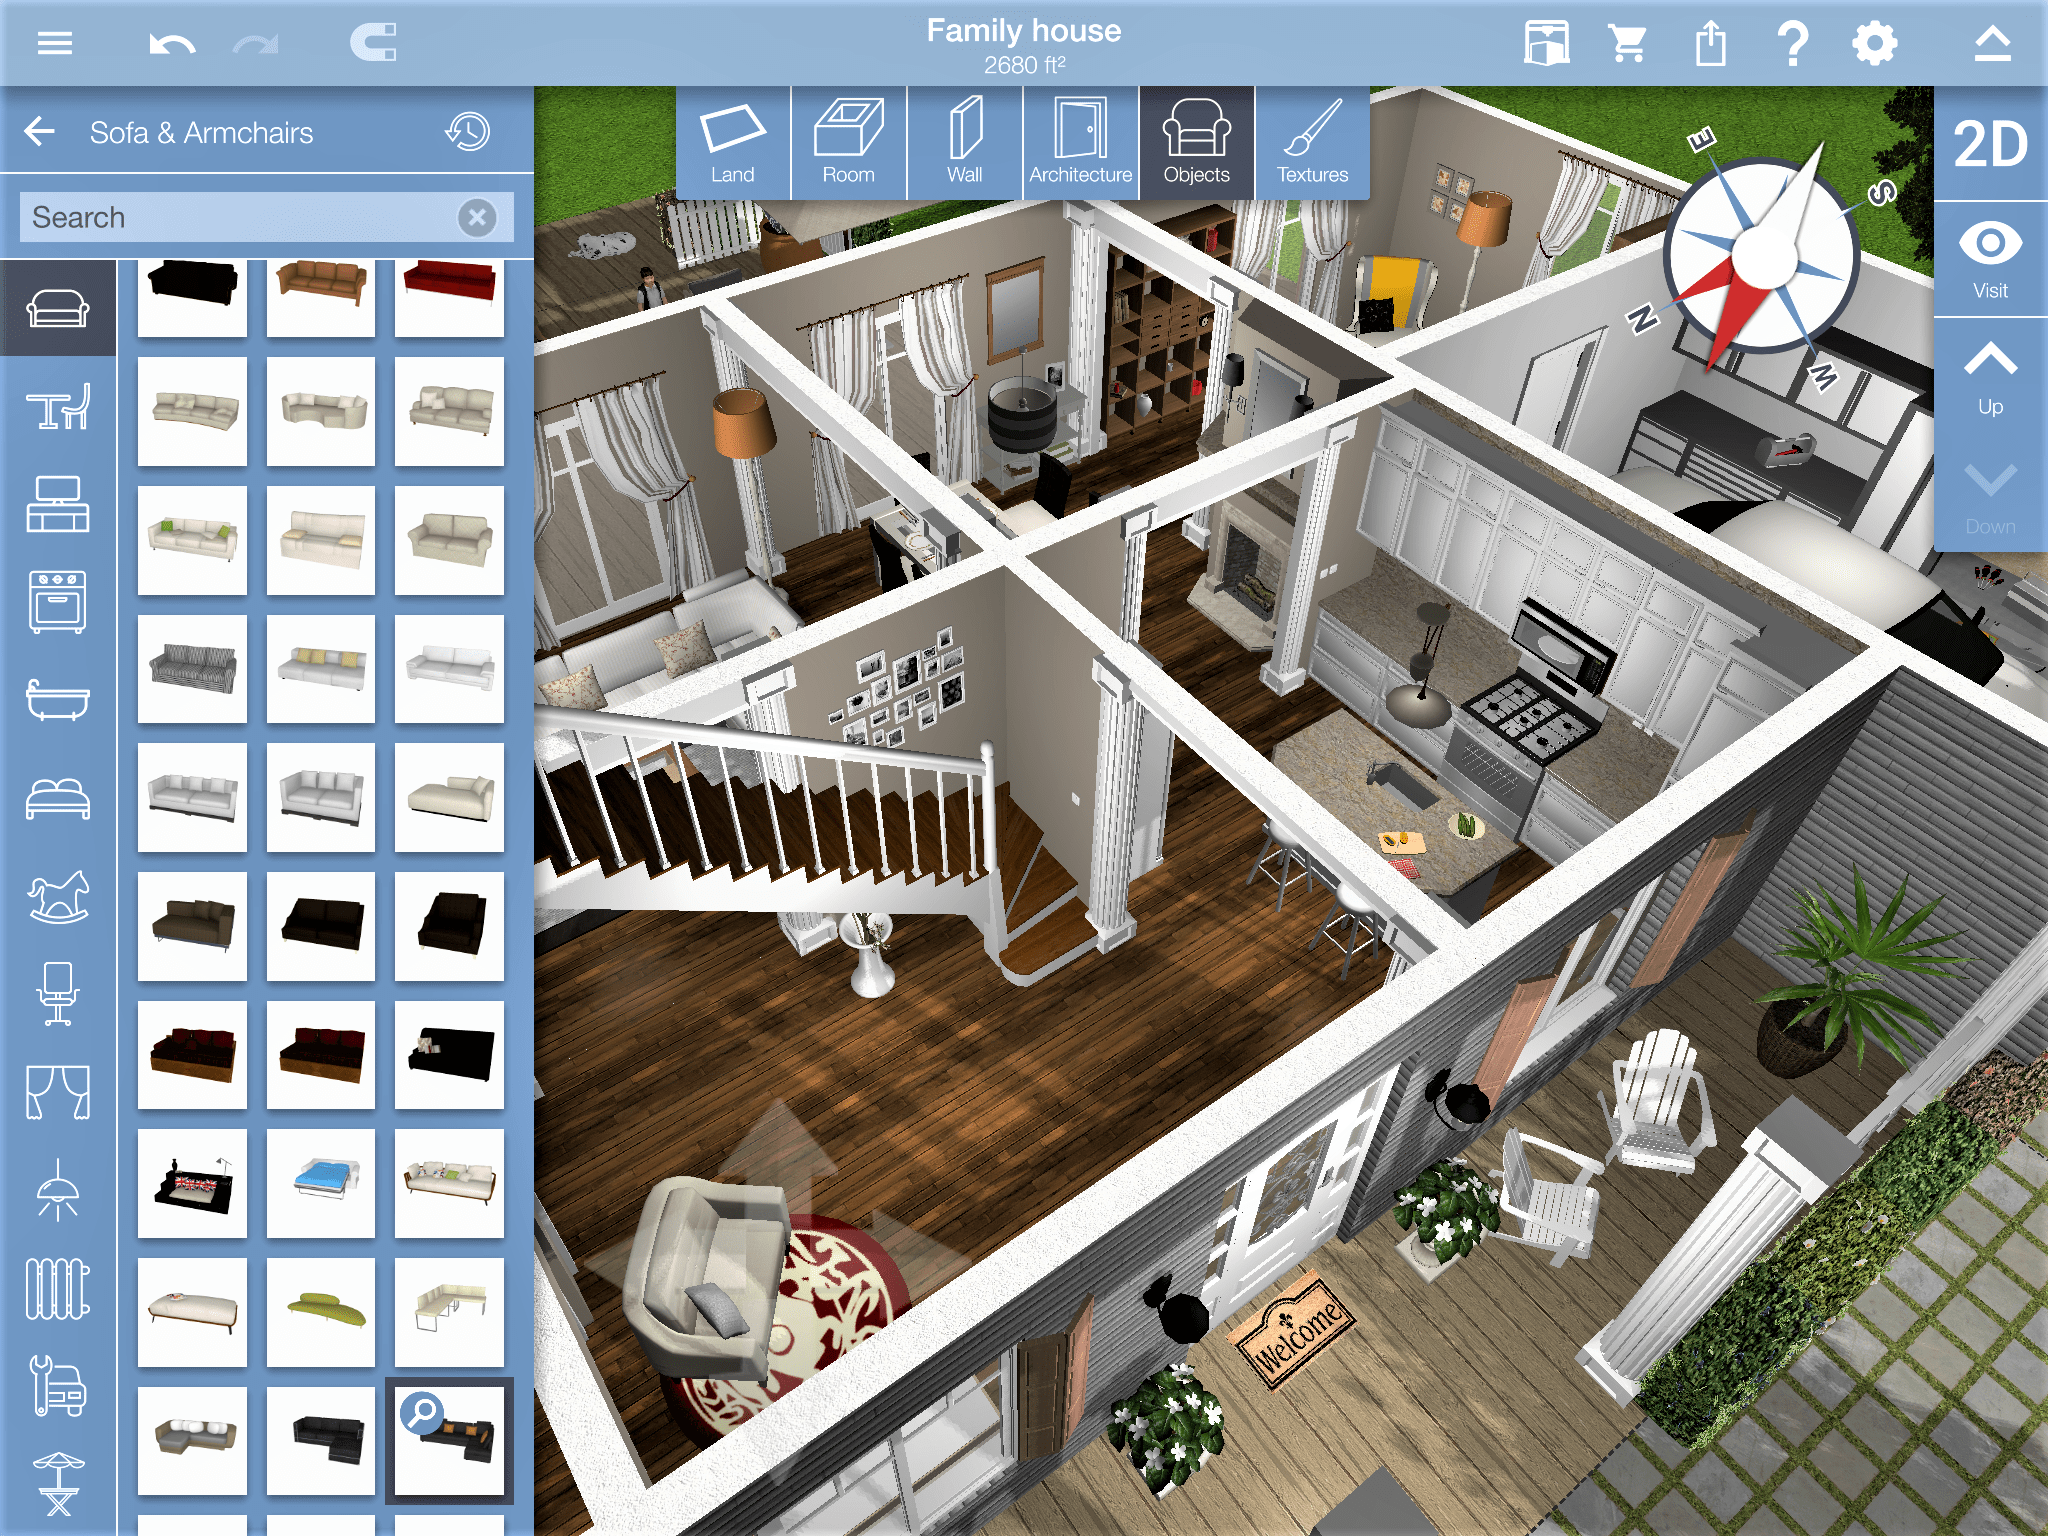 The Best Home Design Apps For Renovating And Decorating Your Space